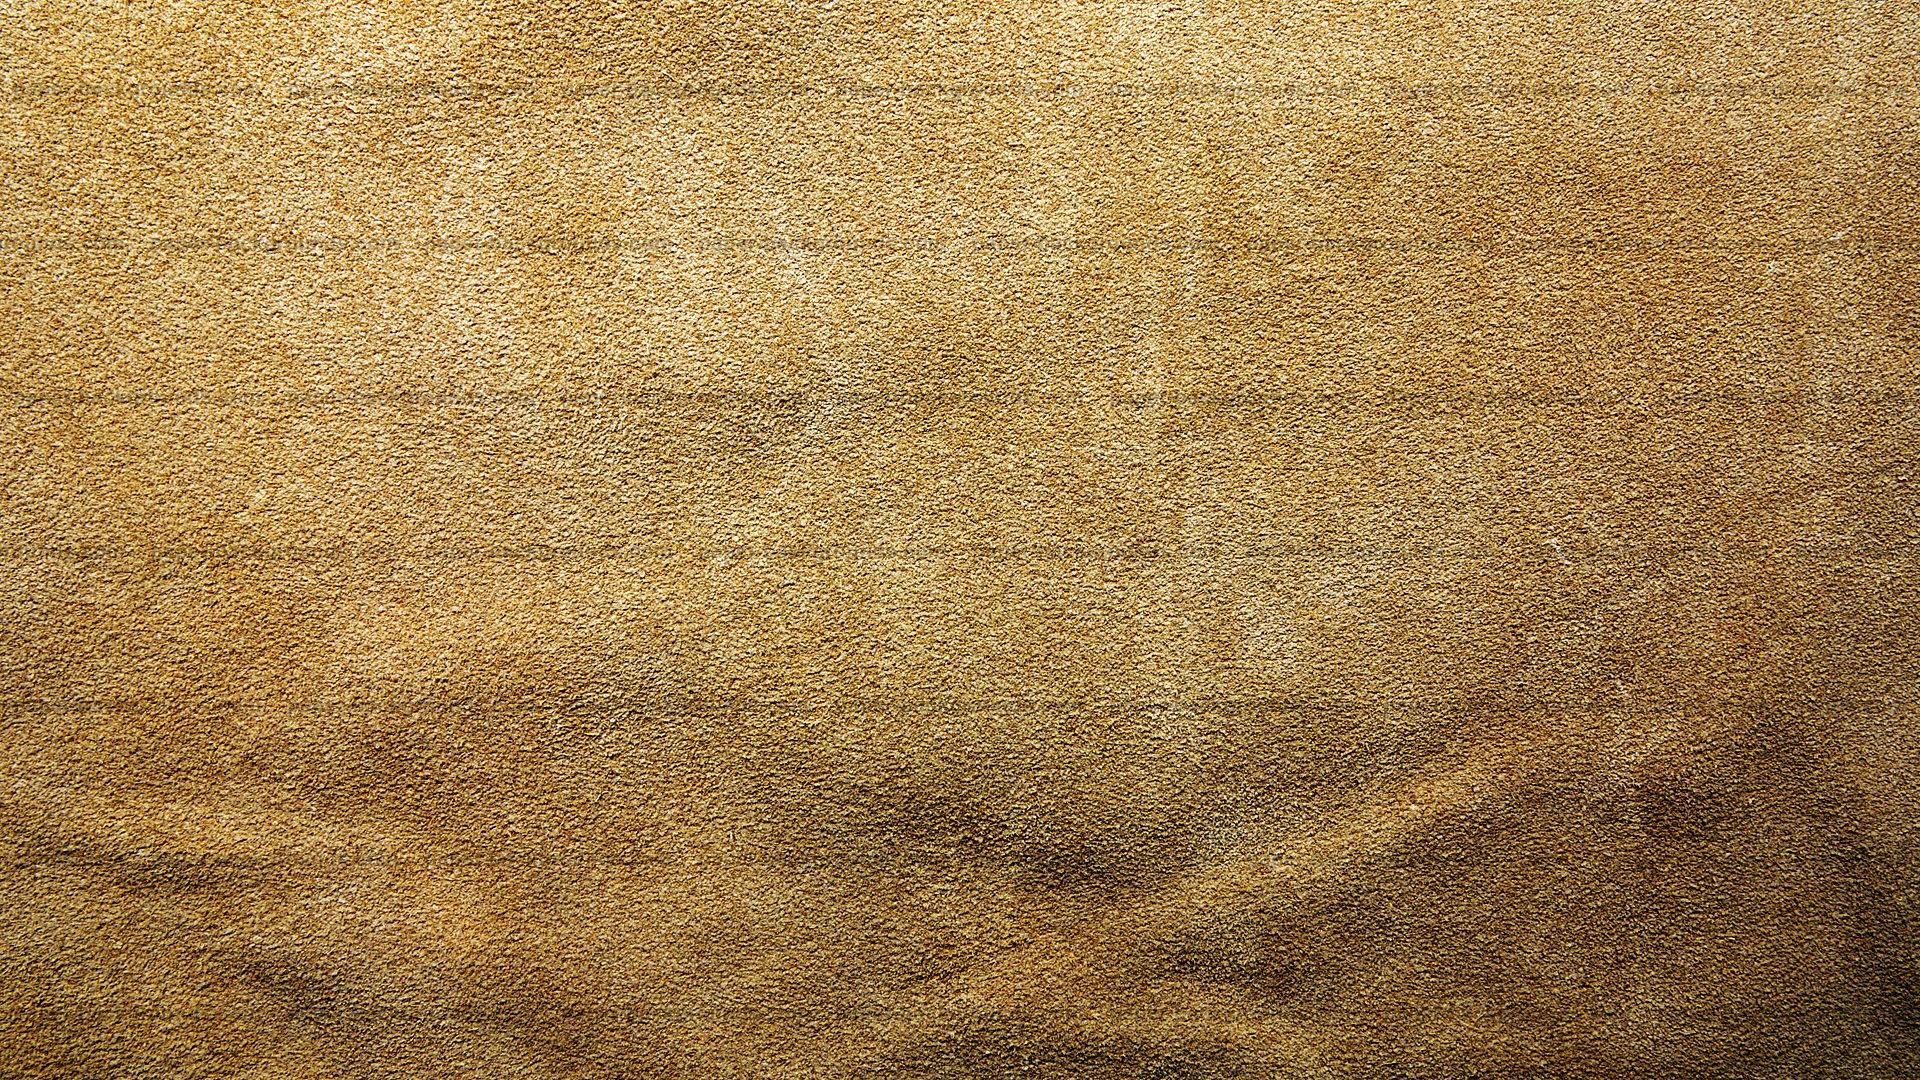 Brown Grunge Soft Leather Texture HD